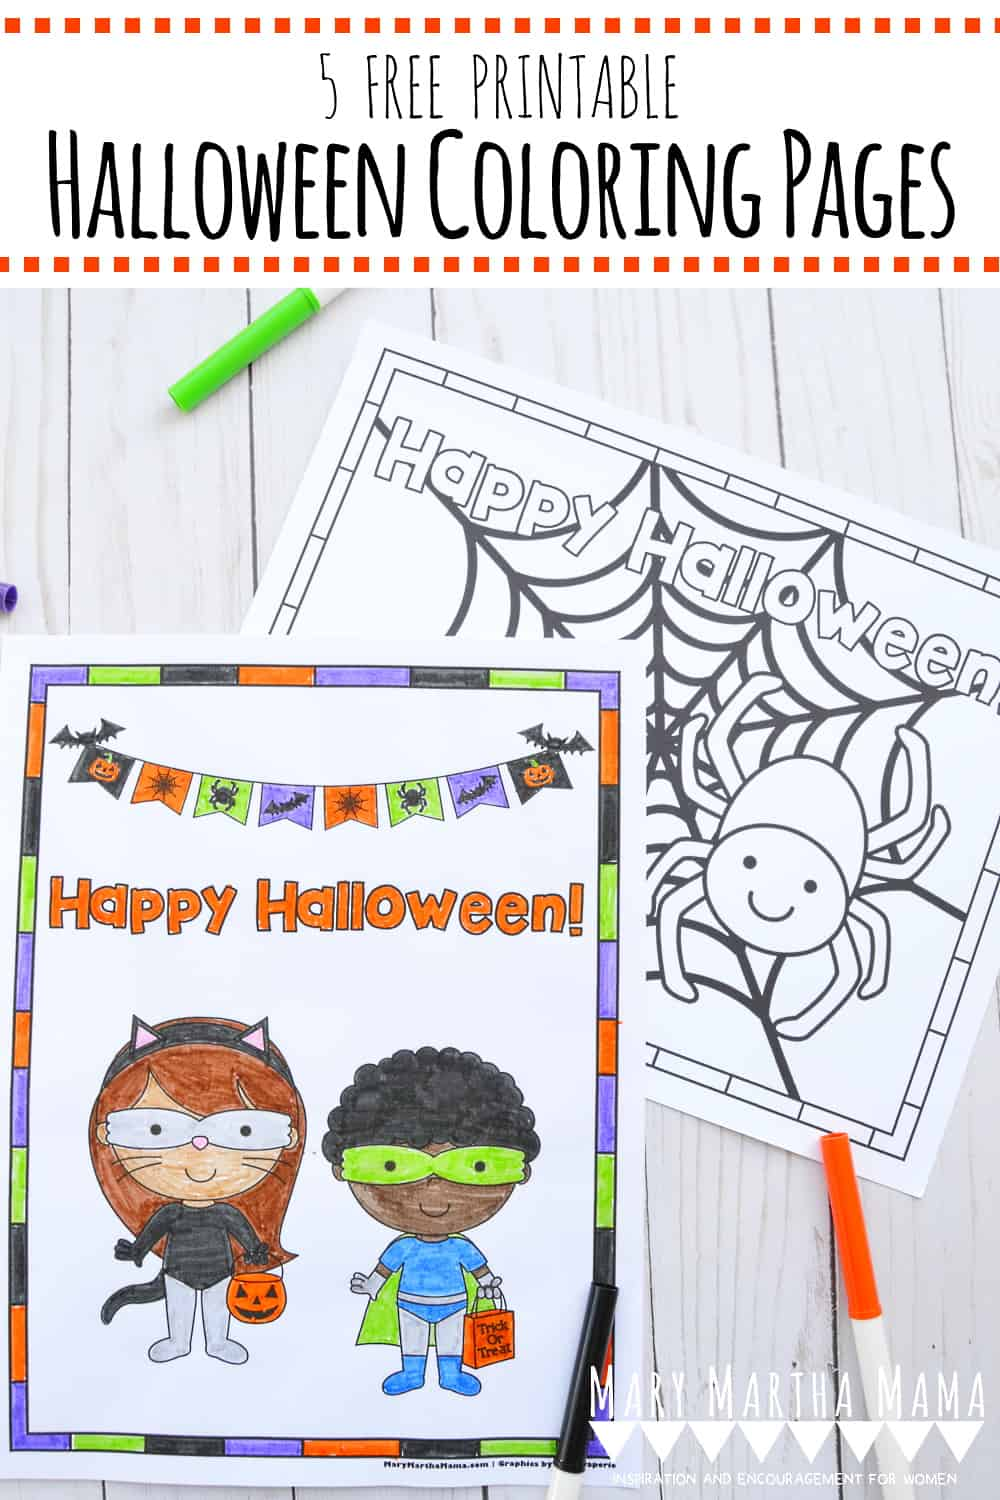 Have a little Halloween fun with these 5 free printable Halloween coloring pages.  They feature trick or treaters, spiders, and jack-o'-lanterns.